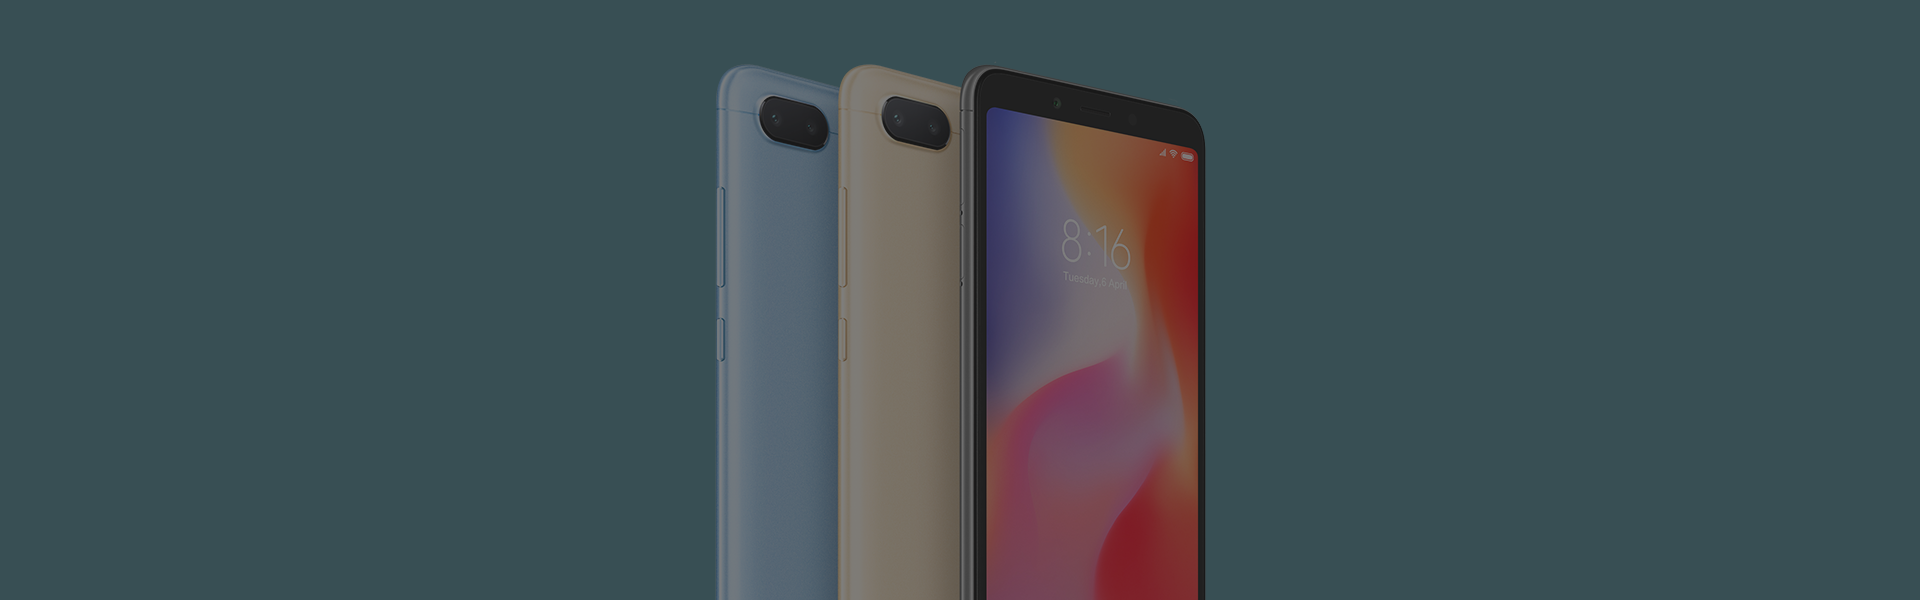 Redmi 6A: </br>Xiaomi's feature-loaded 'Aam Aadmi' smartphone